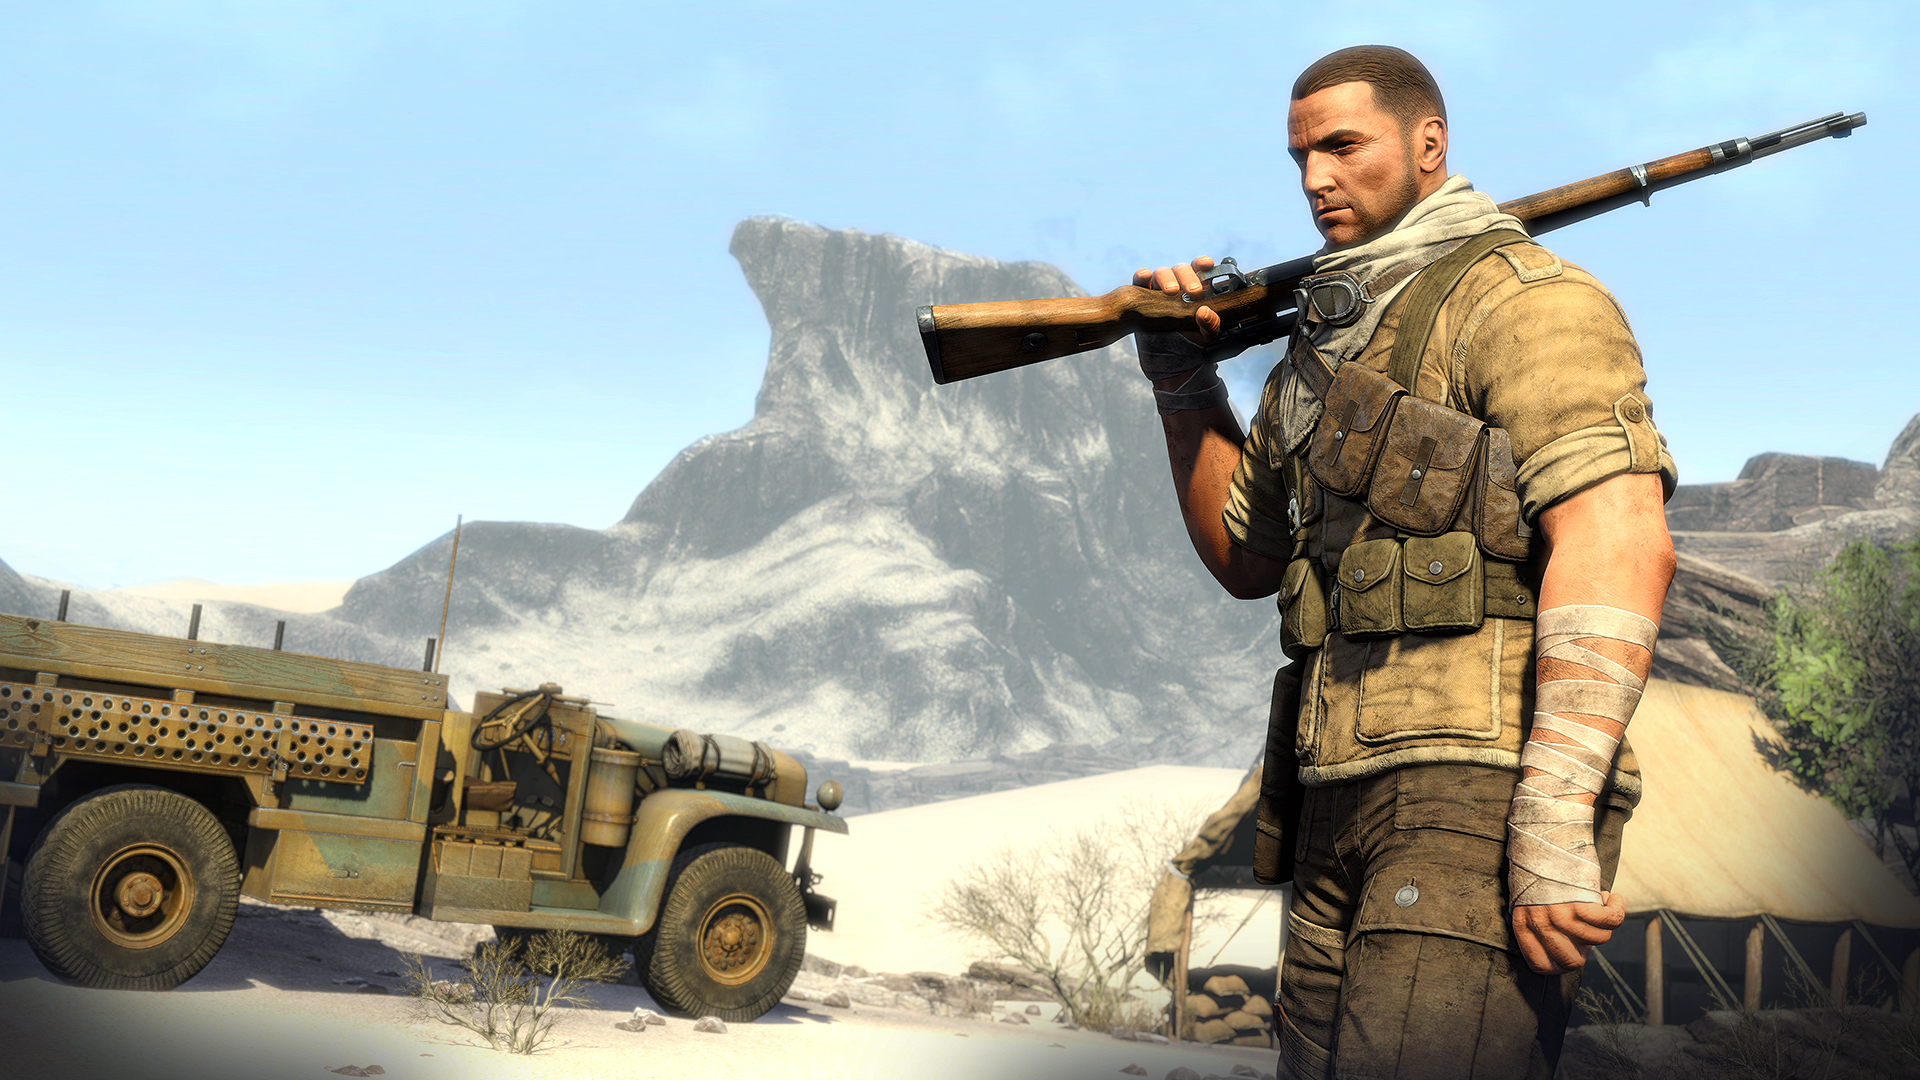 Sniper Elite 3 Wallpapers Screenshots 1920x1080